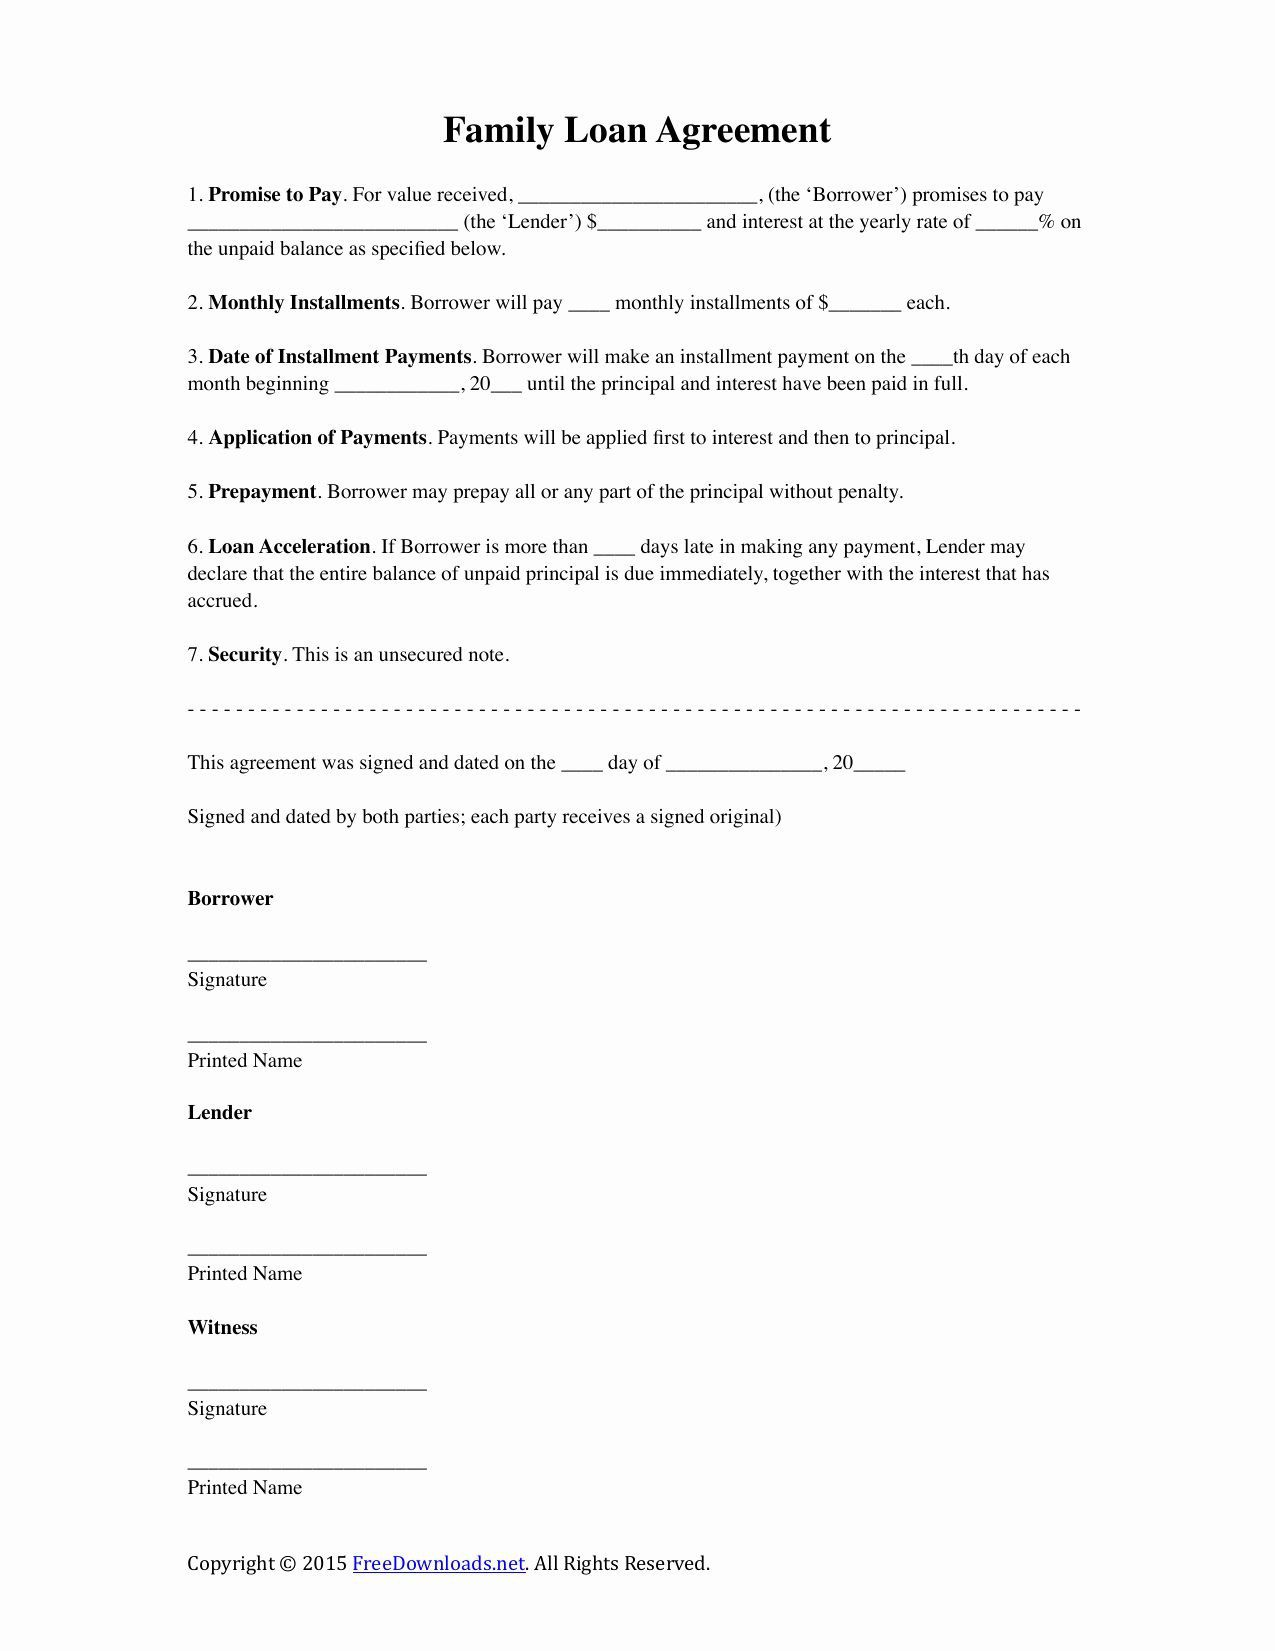 000 Outstanding Family Loan Agreement Template Free Uk High Def  SimpleFull